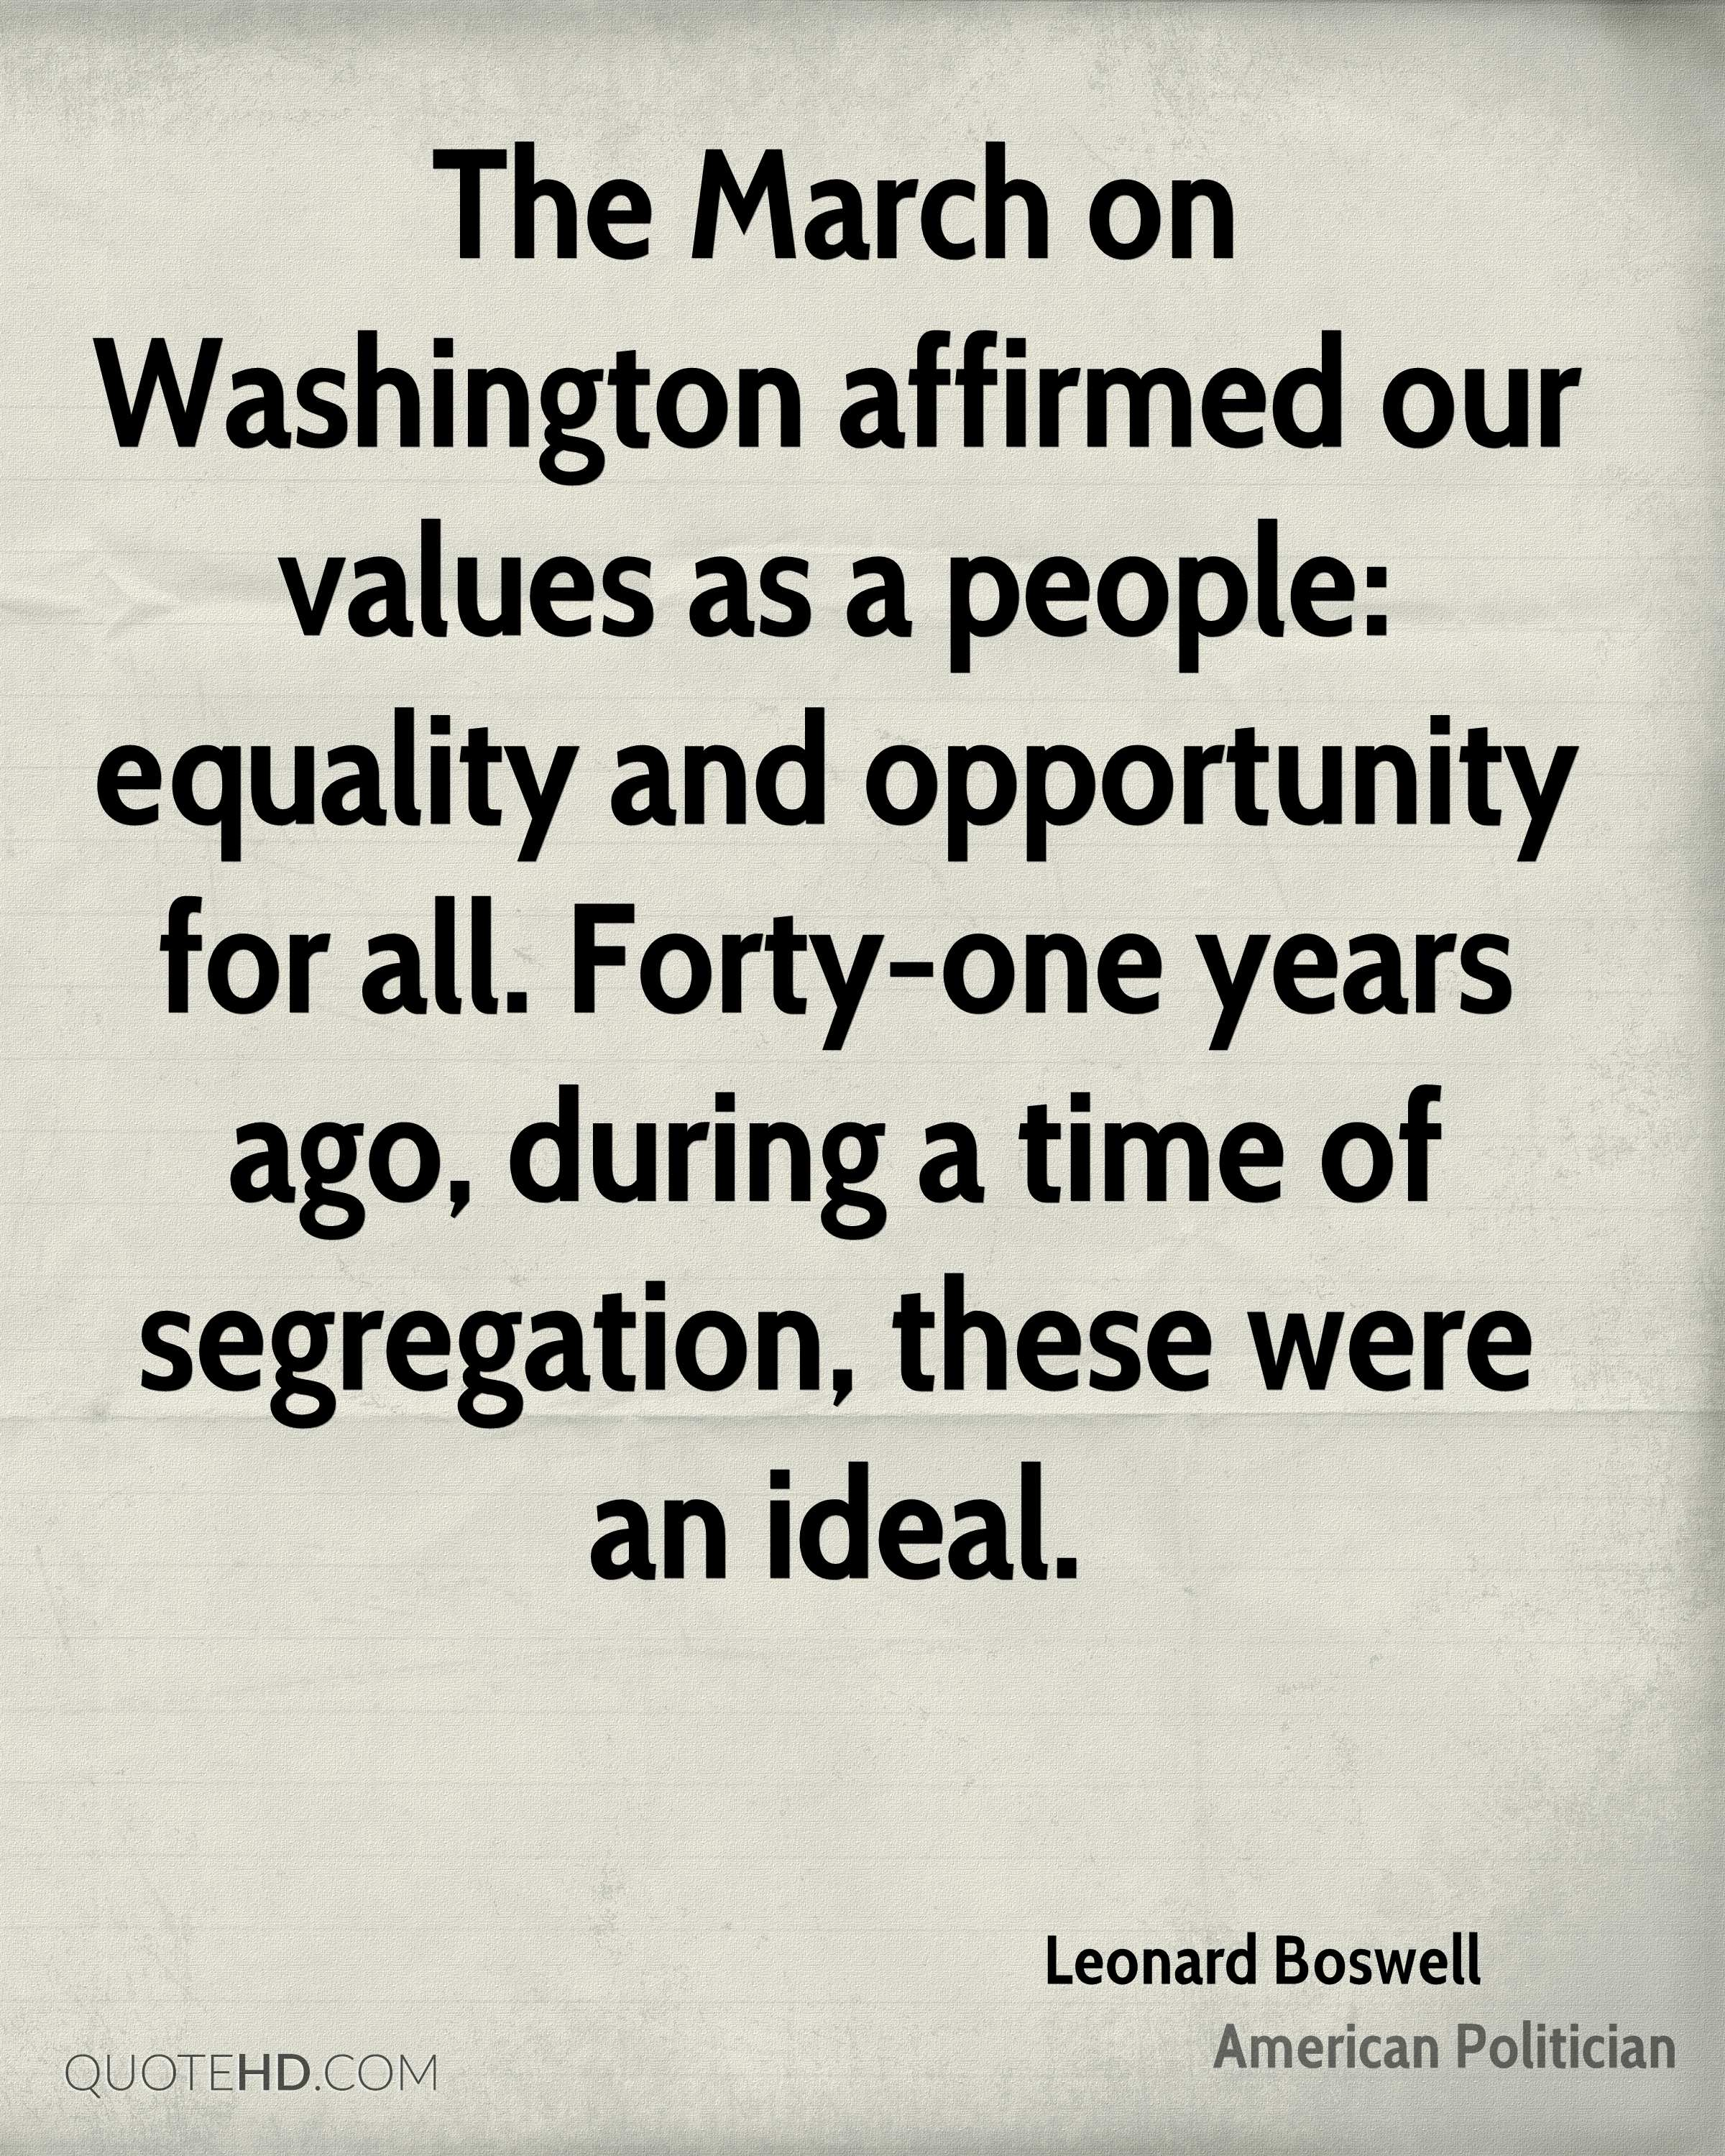 The March on Washington affirmed our values as a people: equality and opportunity for all. Forty-one years ago, during a time of segregation, these were an ideal.